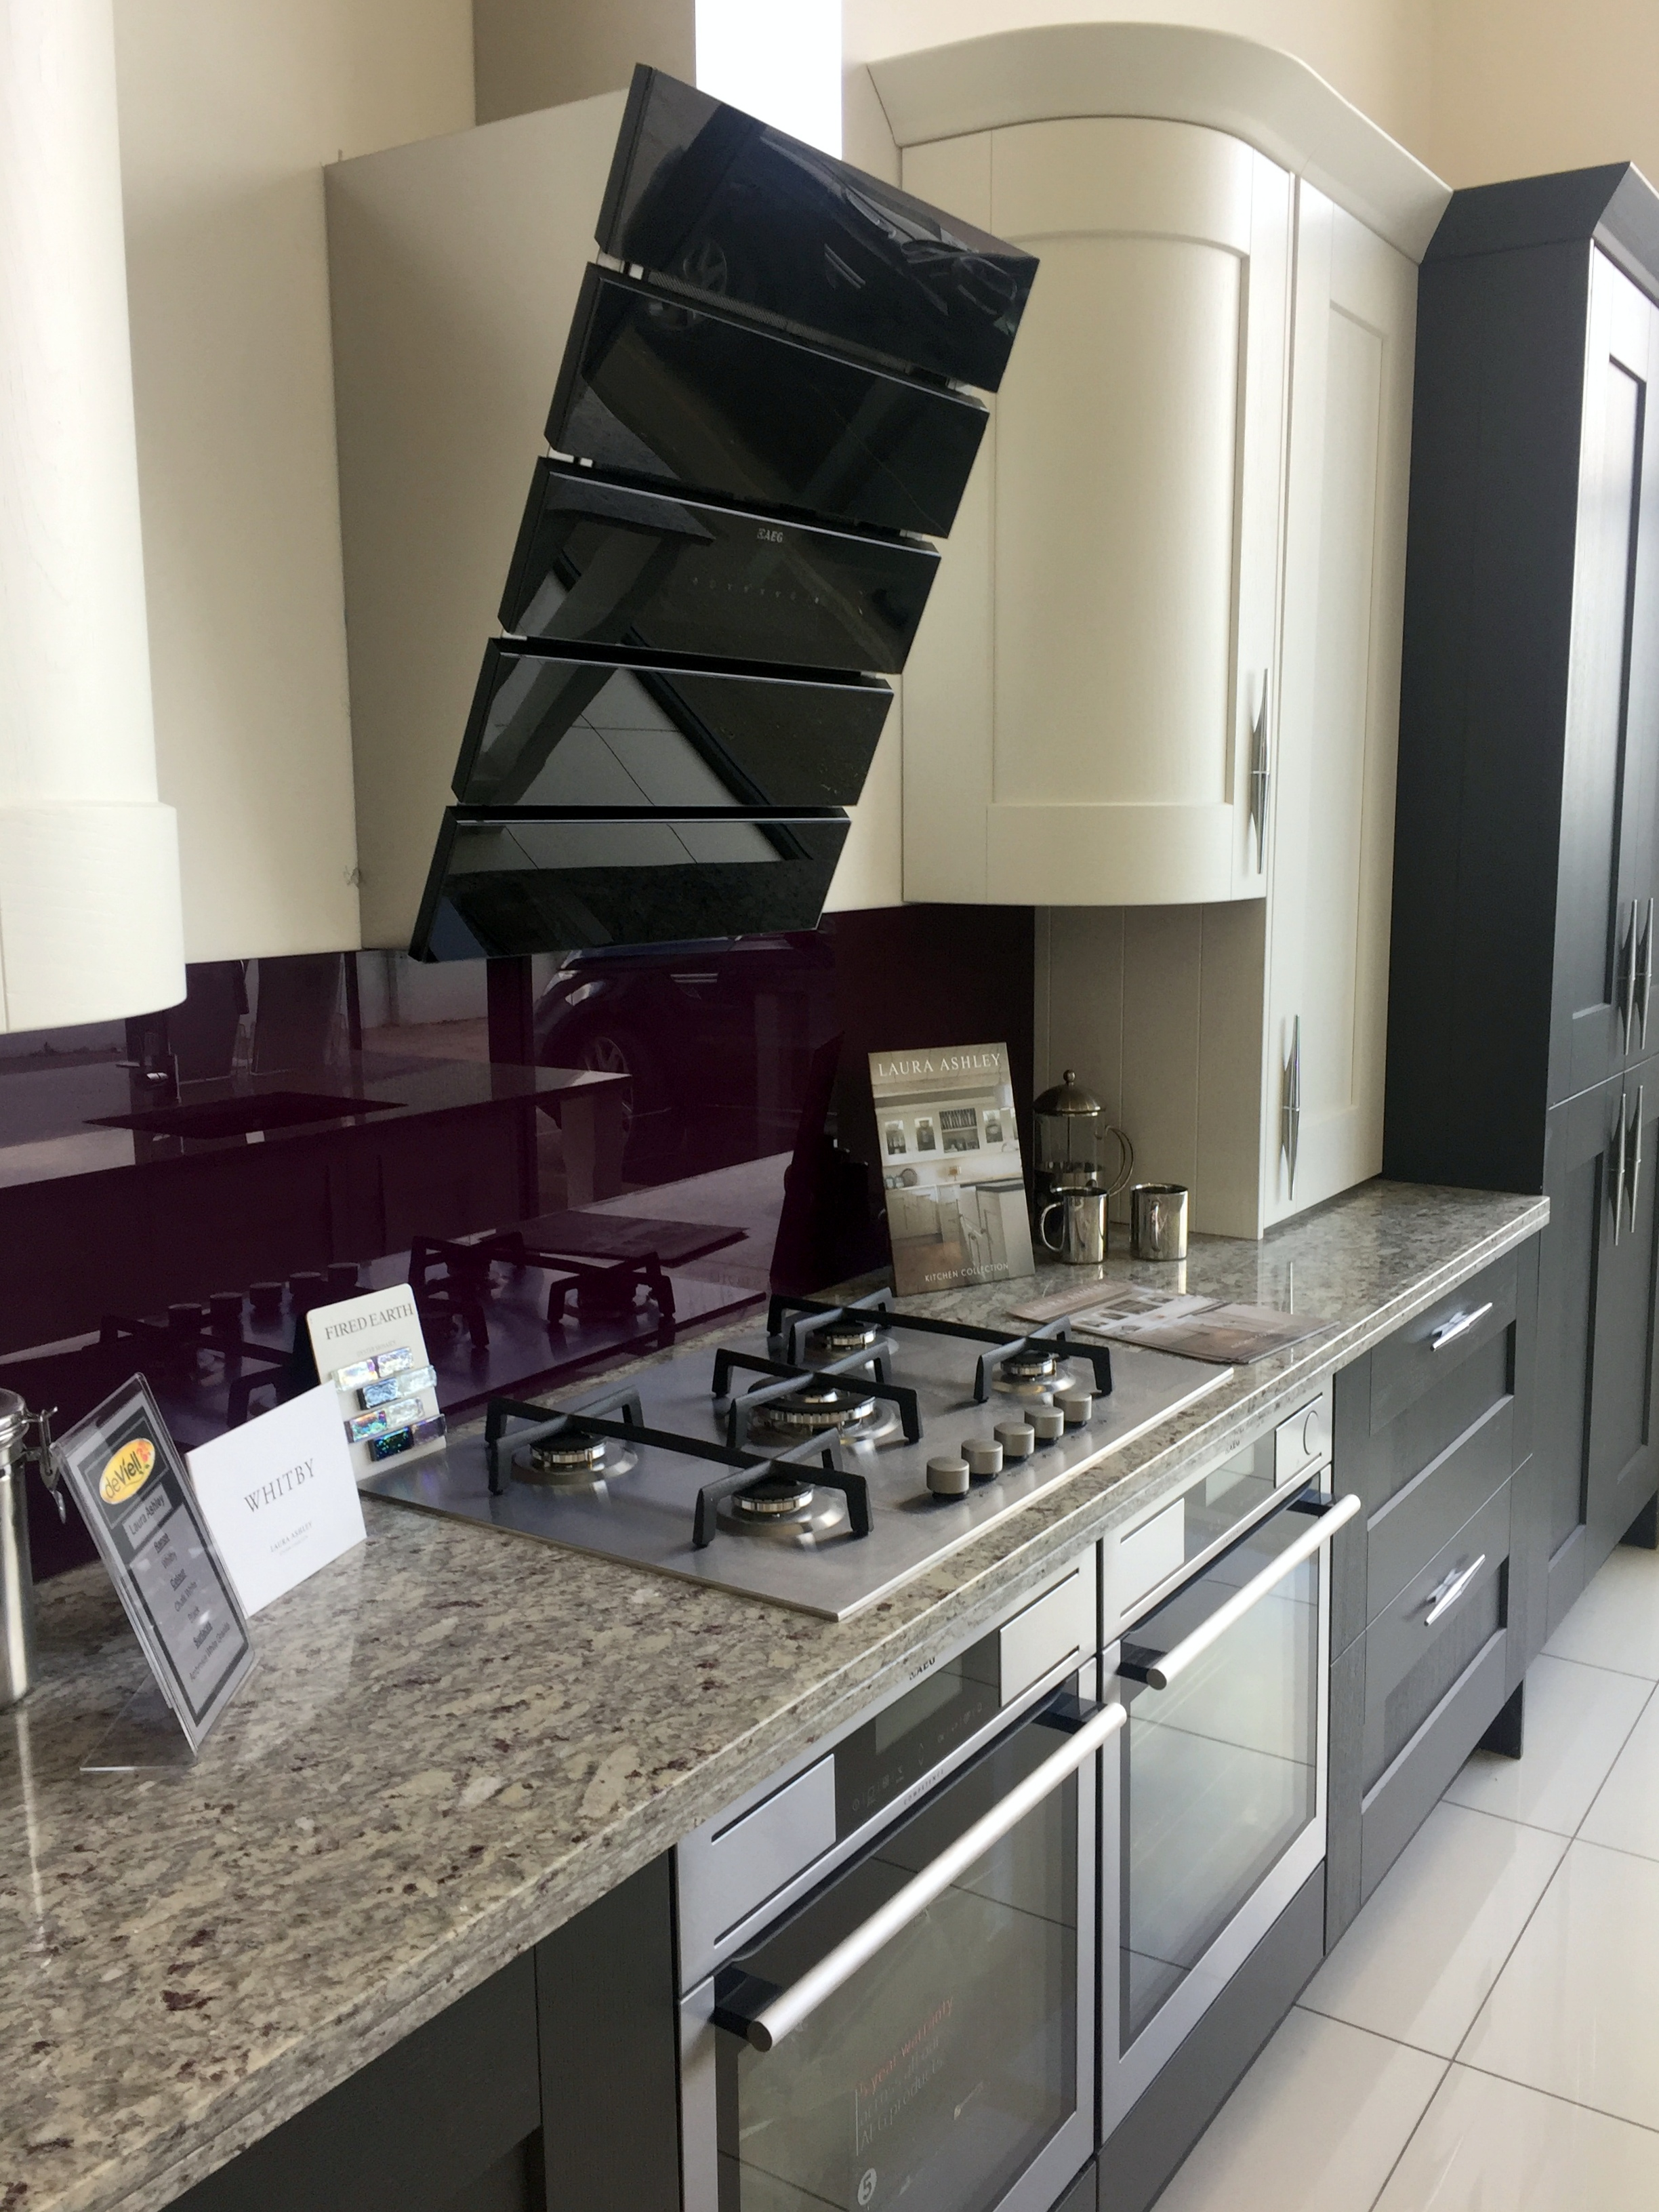 Uncategorized kitchen appliances specialists for Kitchen design specialists colorado springs